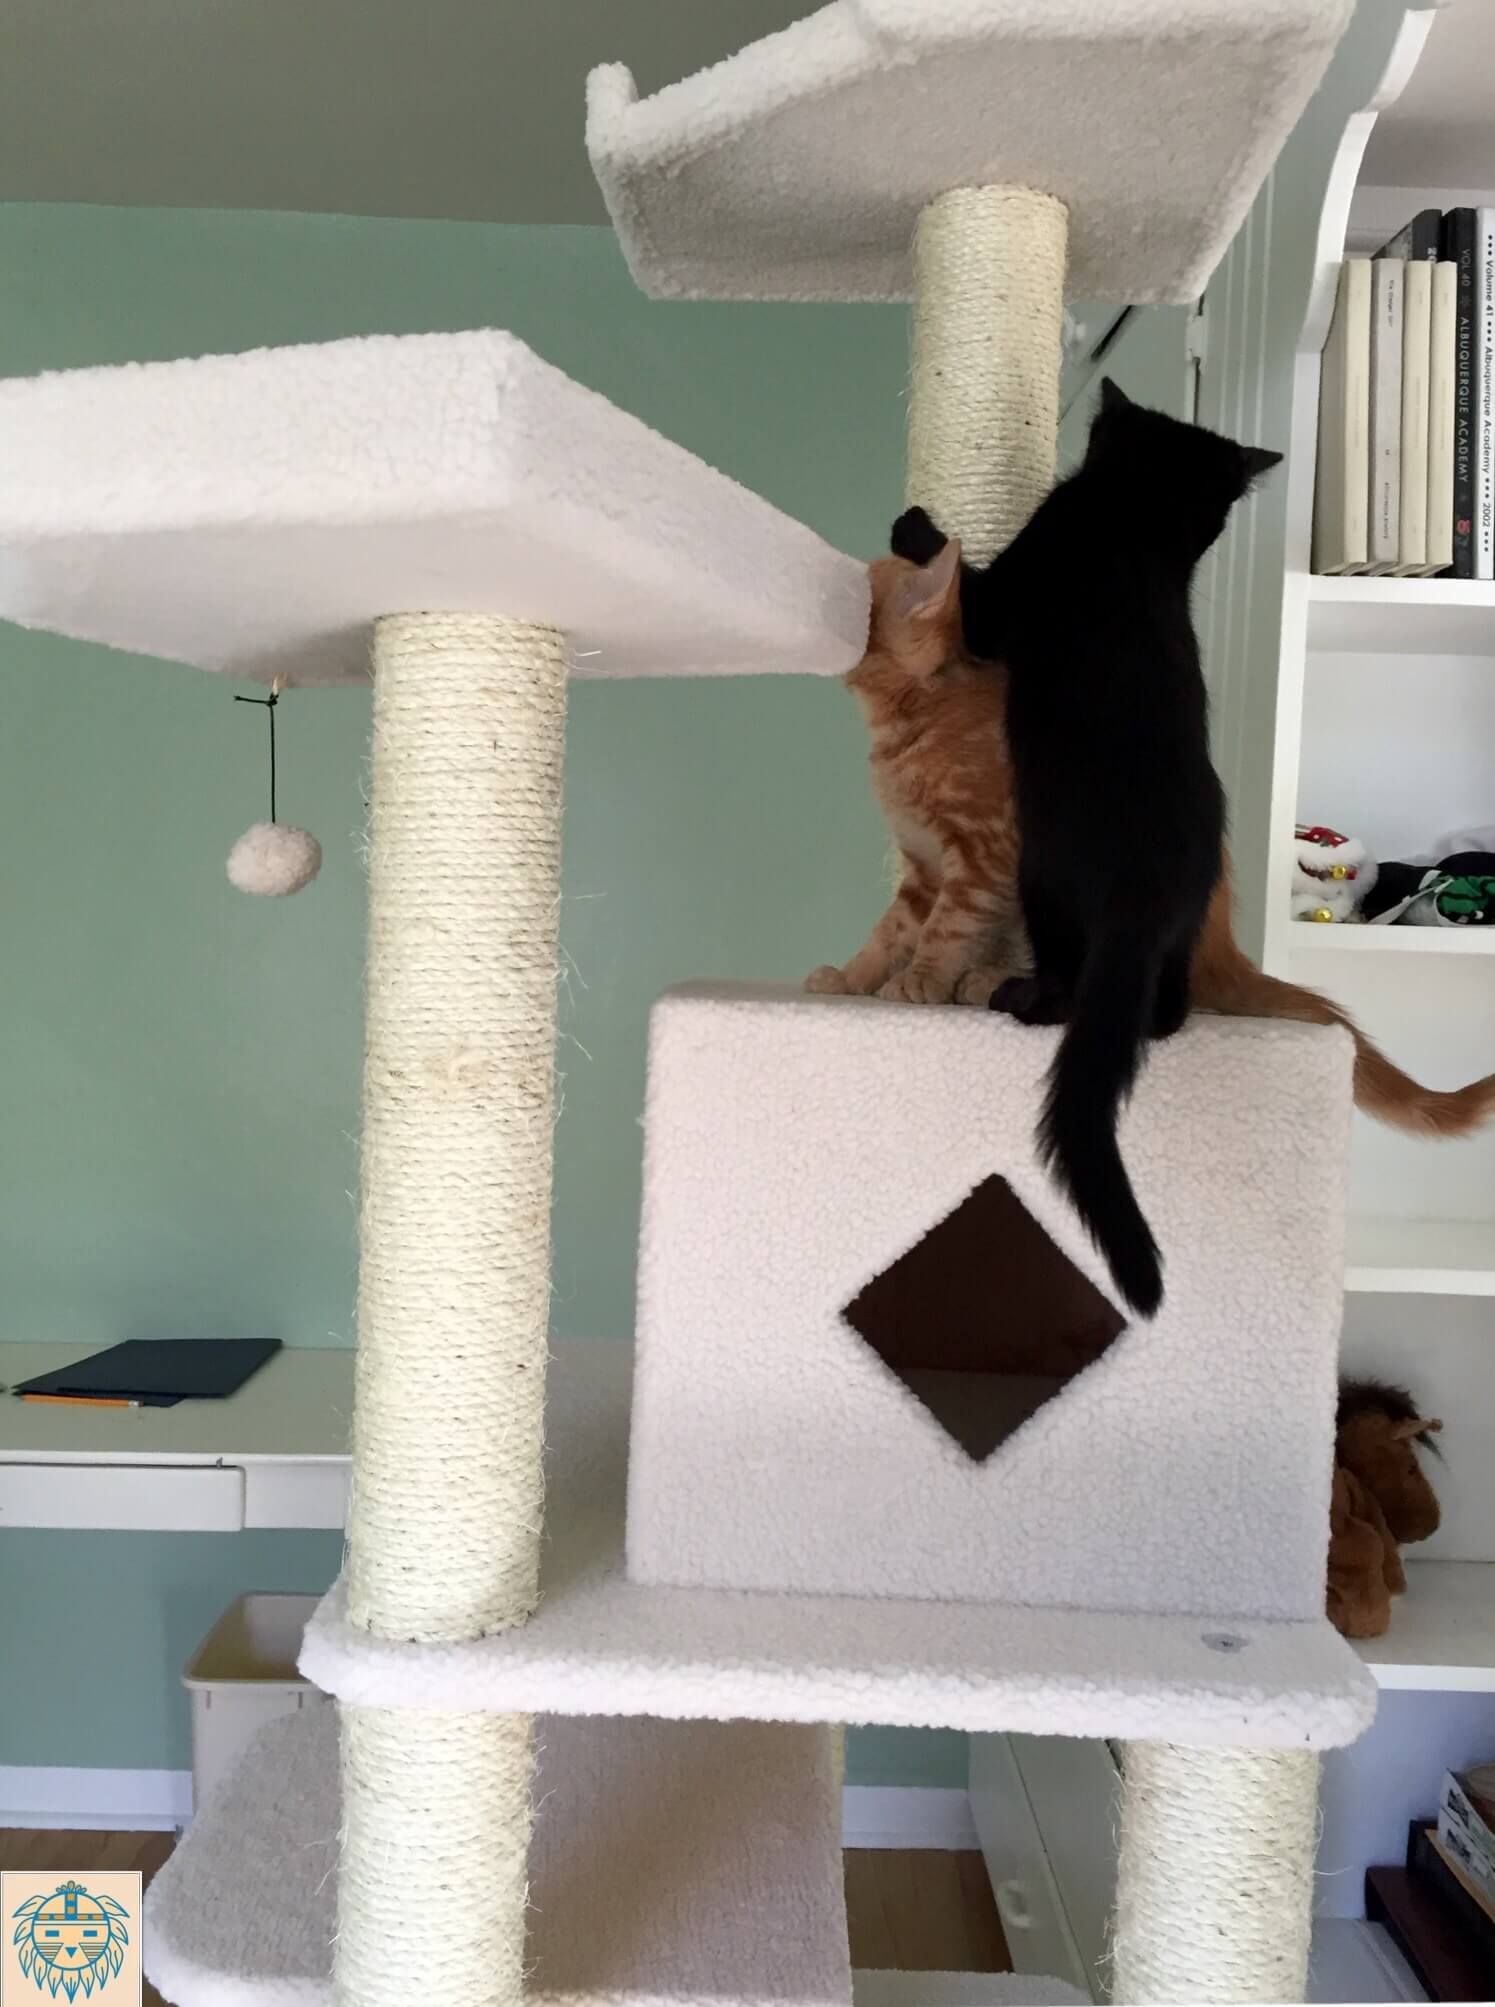 Dr. McGuire's cats Trey and Finn as kittens enjoying play time on their cat arobic center